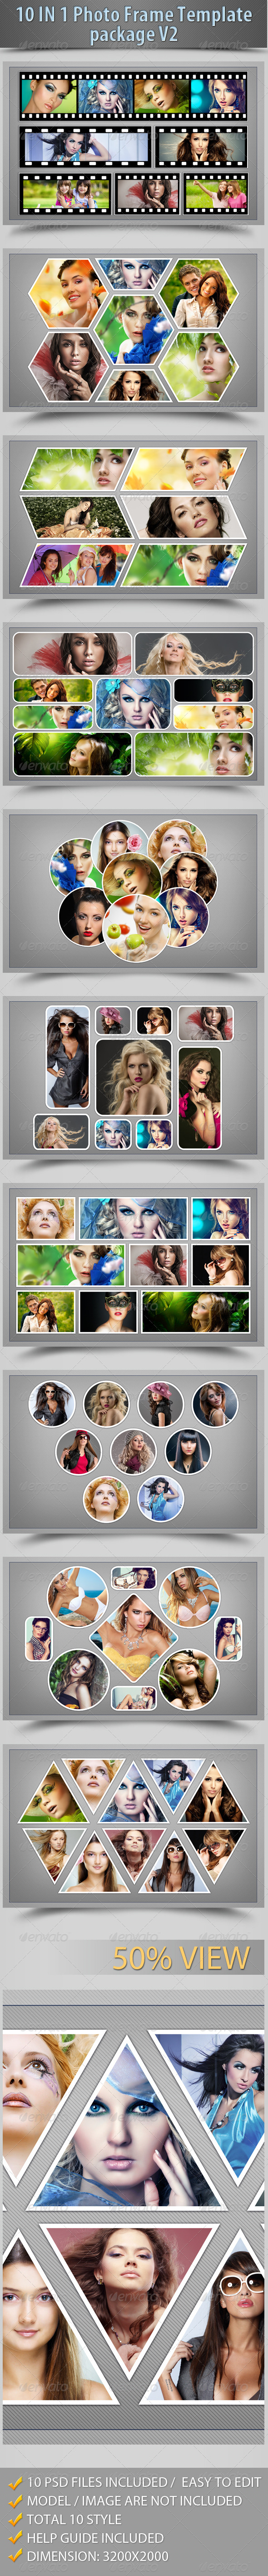 10 In 1 Photo Frame Template Package V2 - Photo Templates Graphics